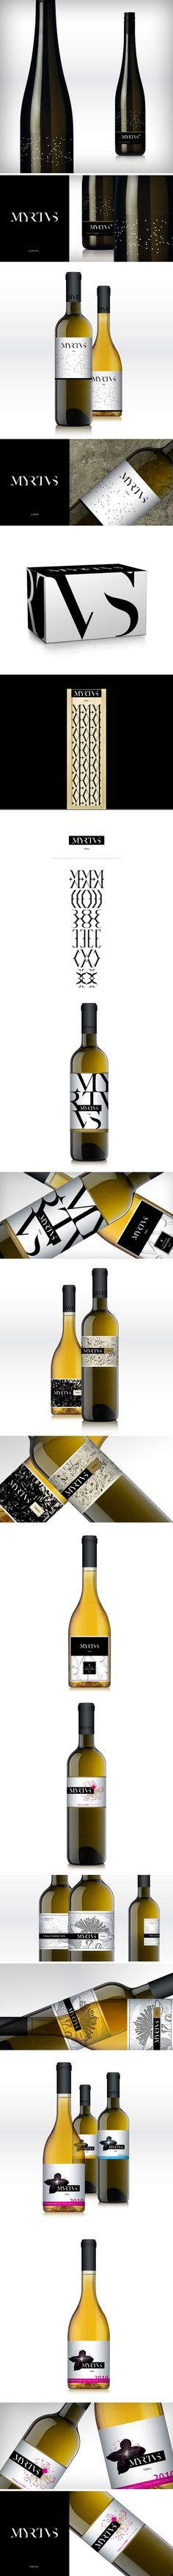 """Myrtus winery by KissZsombor - Identity and package design concept for Myrtus winery.    """"Myrtus is a Hungarian winery in the world famous wine region of Tokaj. Myrtus also the name of a Mediterranean plant."""""""